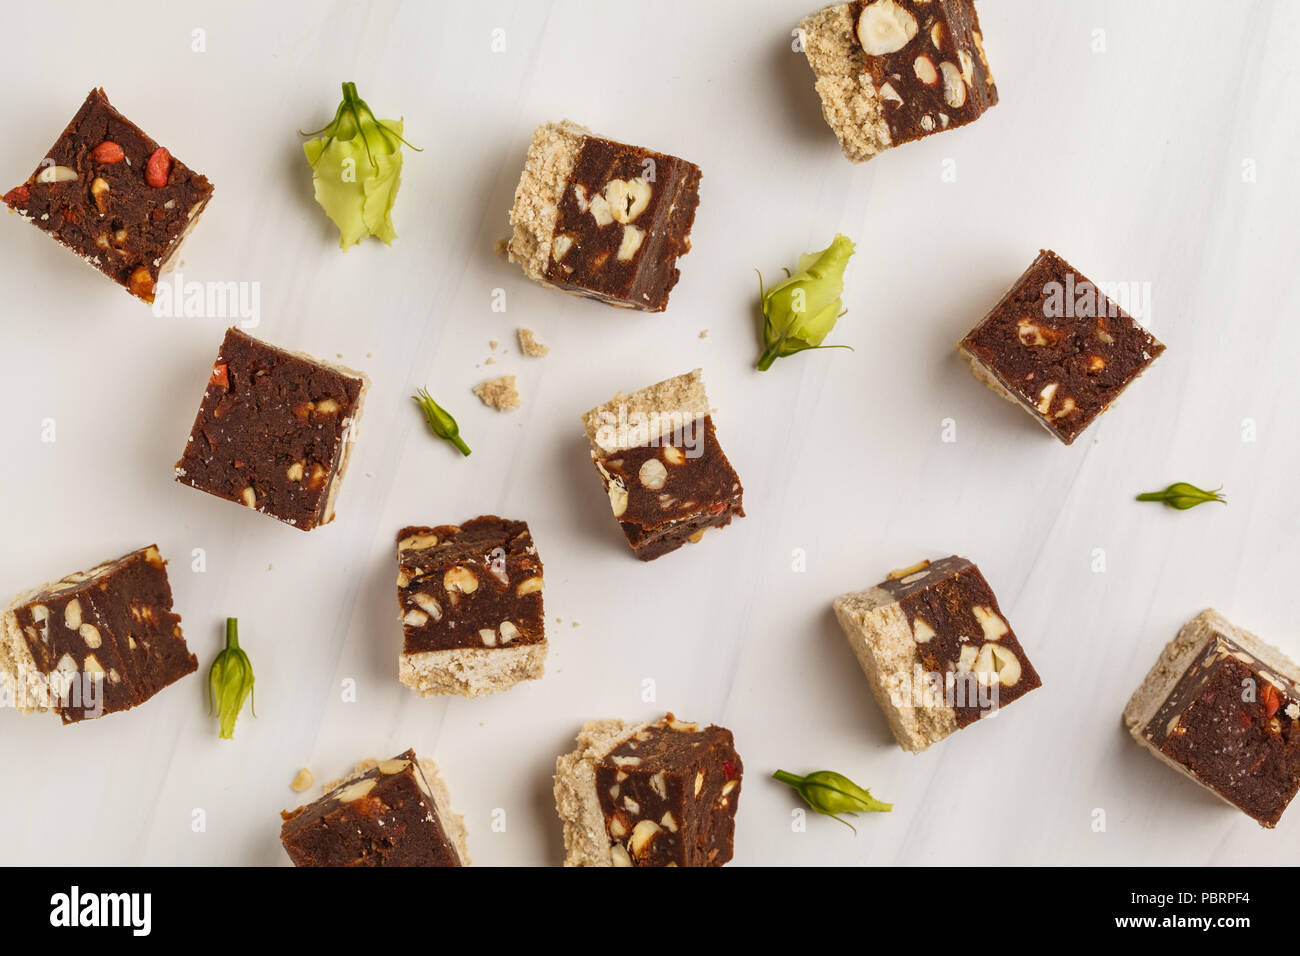 Raw vegan bars with nuts and cocoa, white background, top view. Healthy vegan food concept. - Stock Image